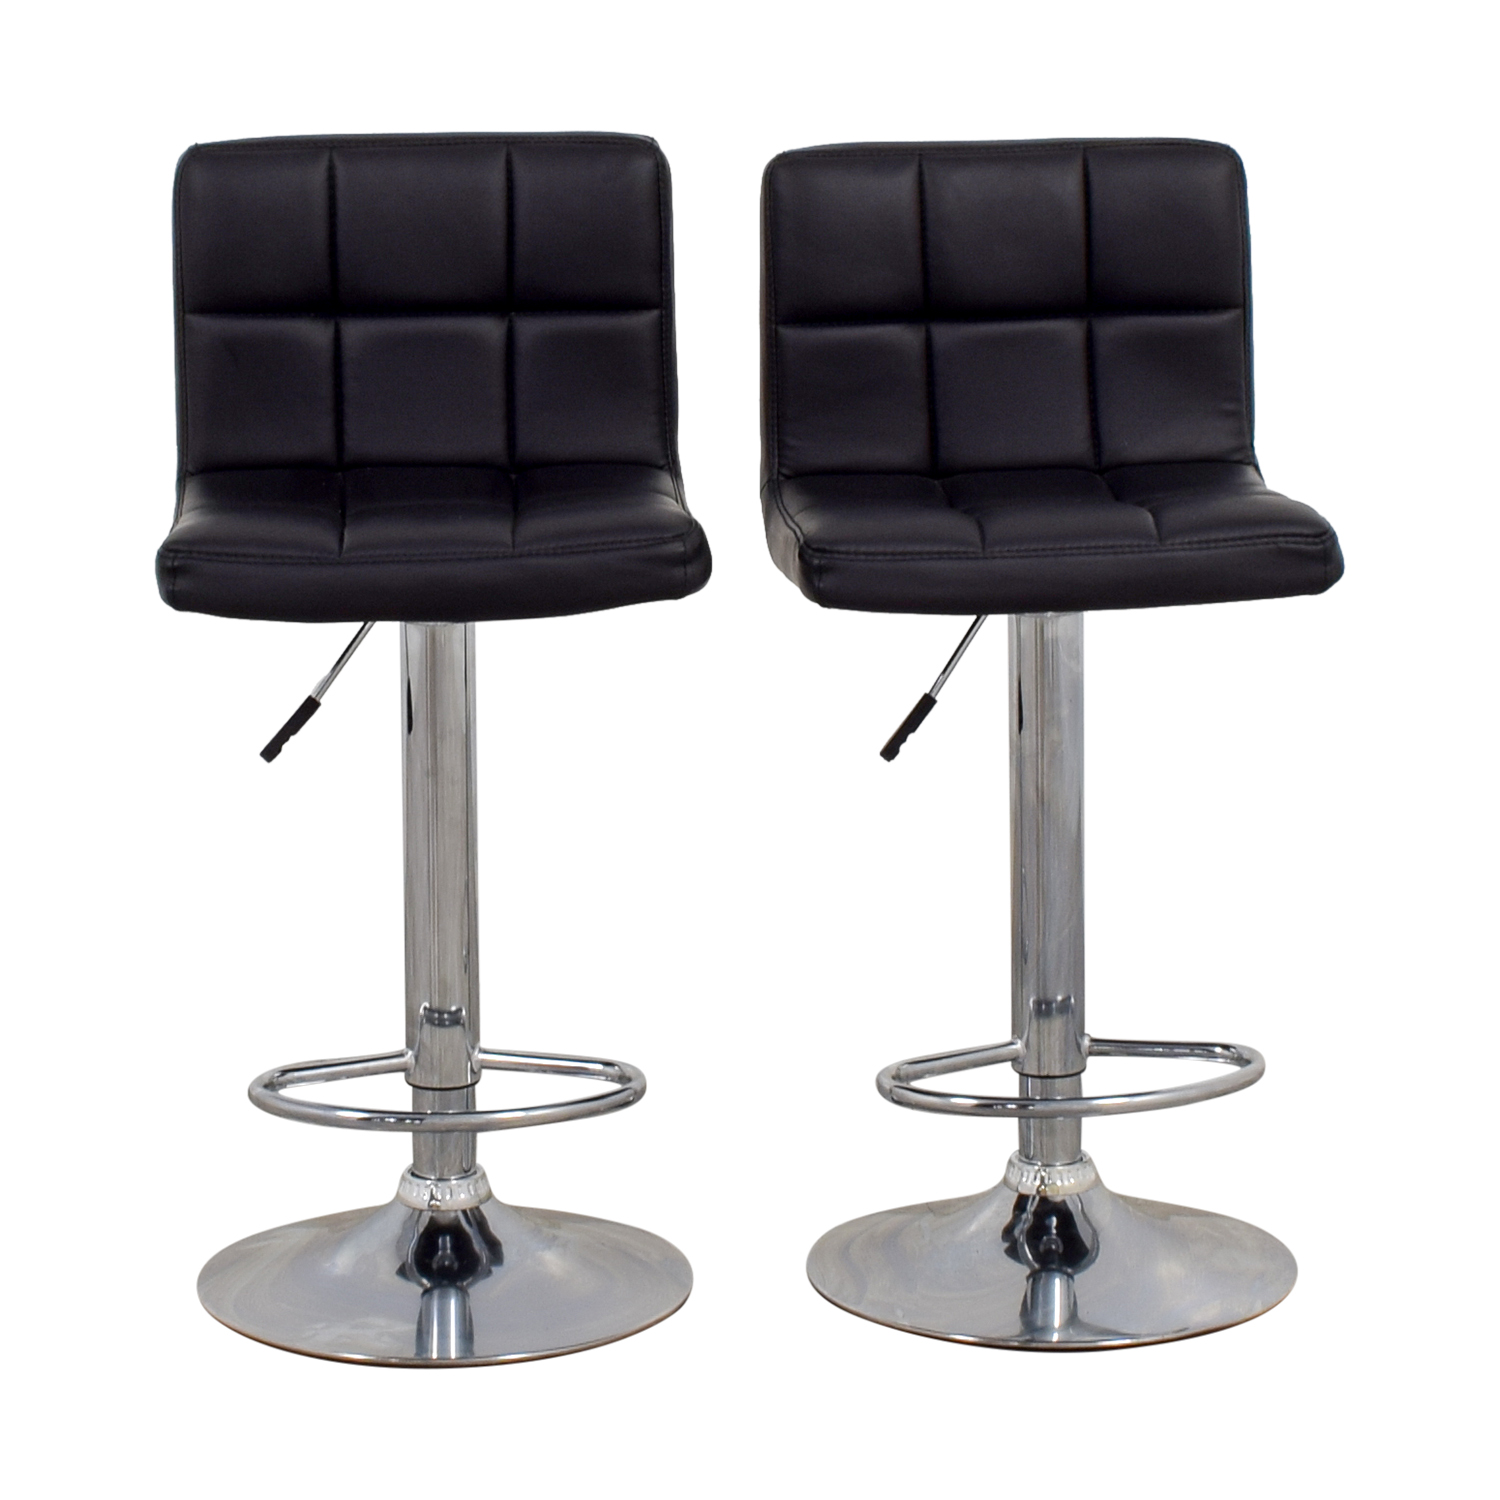 buy Homall Adjustable Swivel Black Bonded Leather Barstools Homall Stools